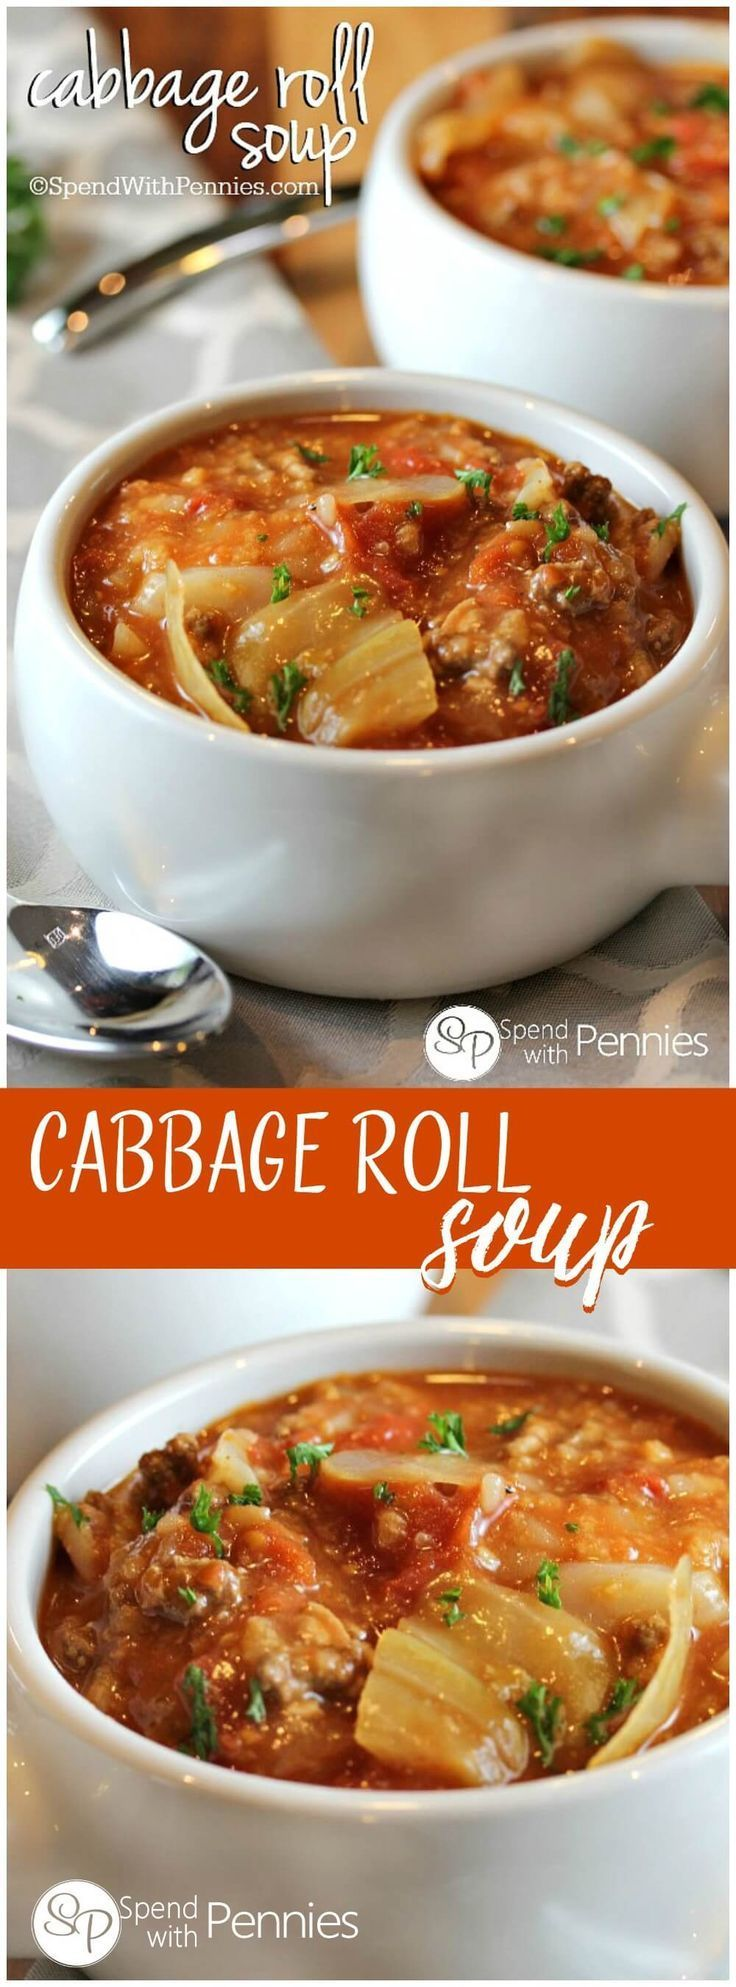 Cabbage Roll Soup is my favorite way to enjoy cabbage rolls! Loads of cabbage, meat and rice in a flavorful tomato broth make the perfect comfort food! http://www.spendwithpennies.com/cabbage-roll-soup-2/